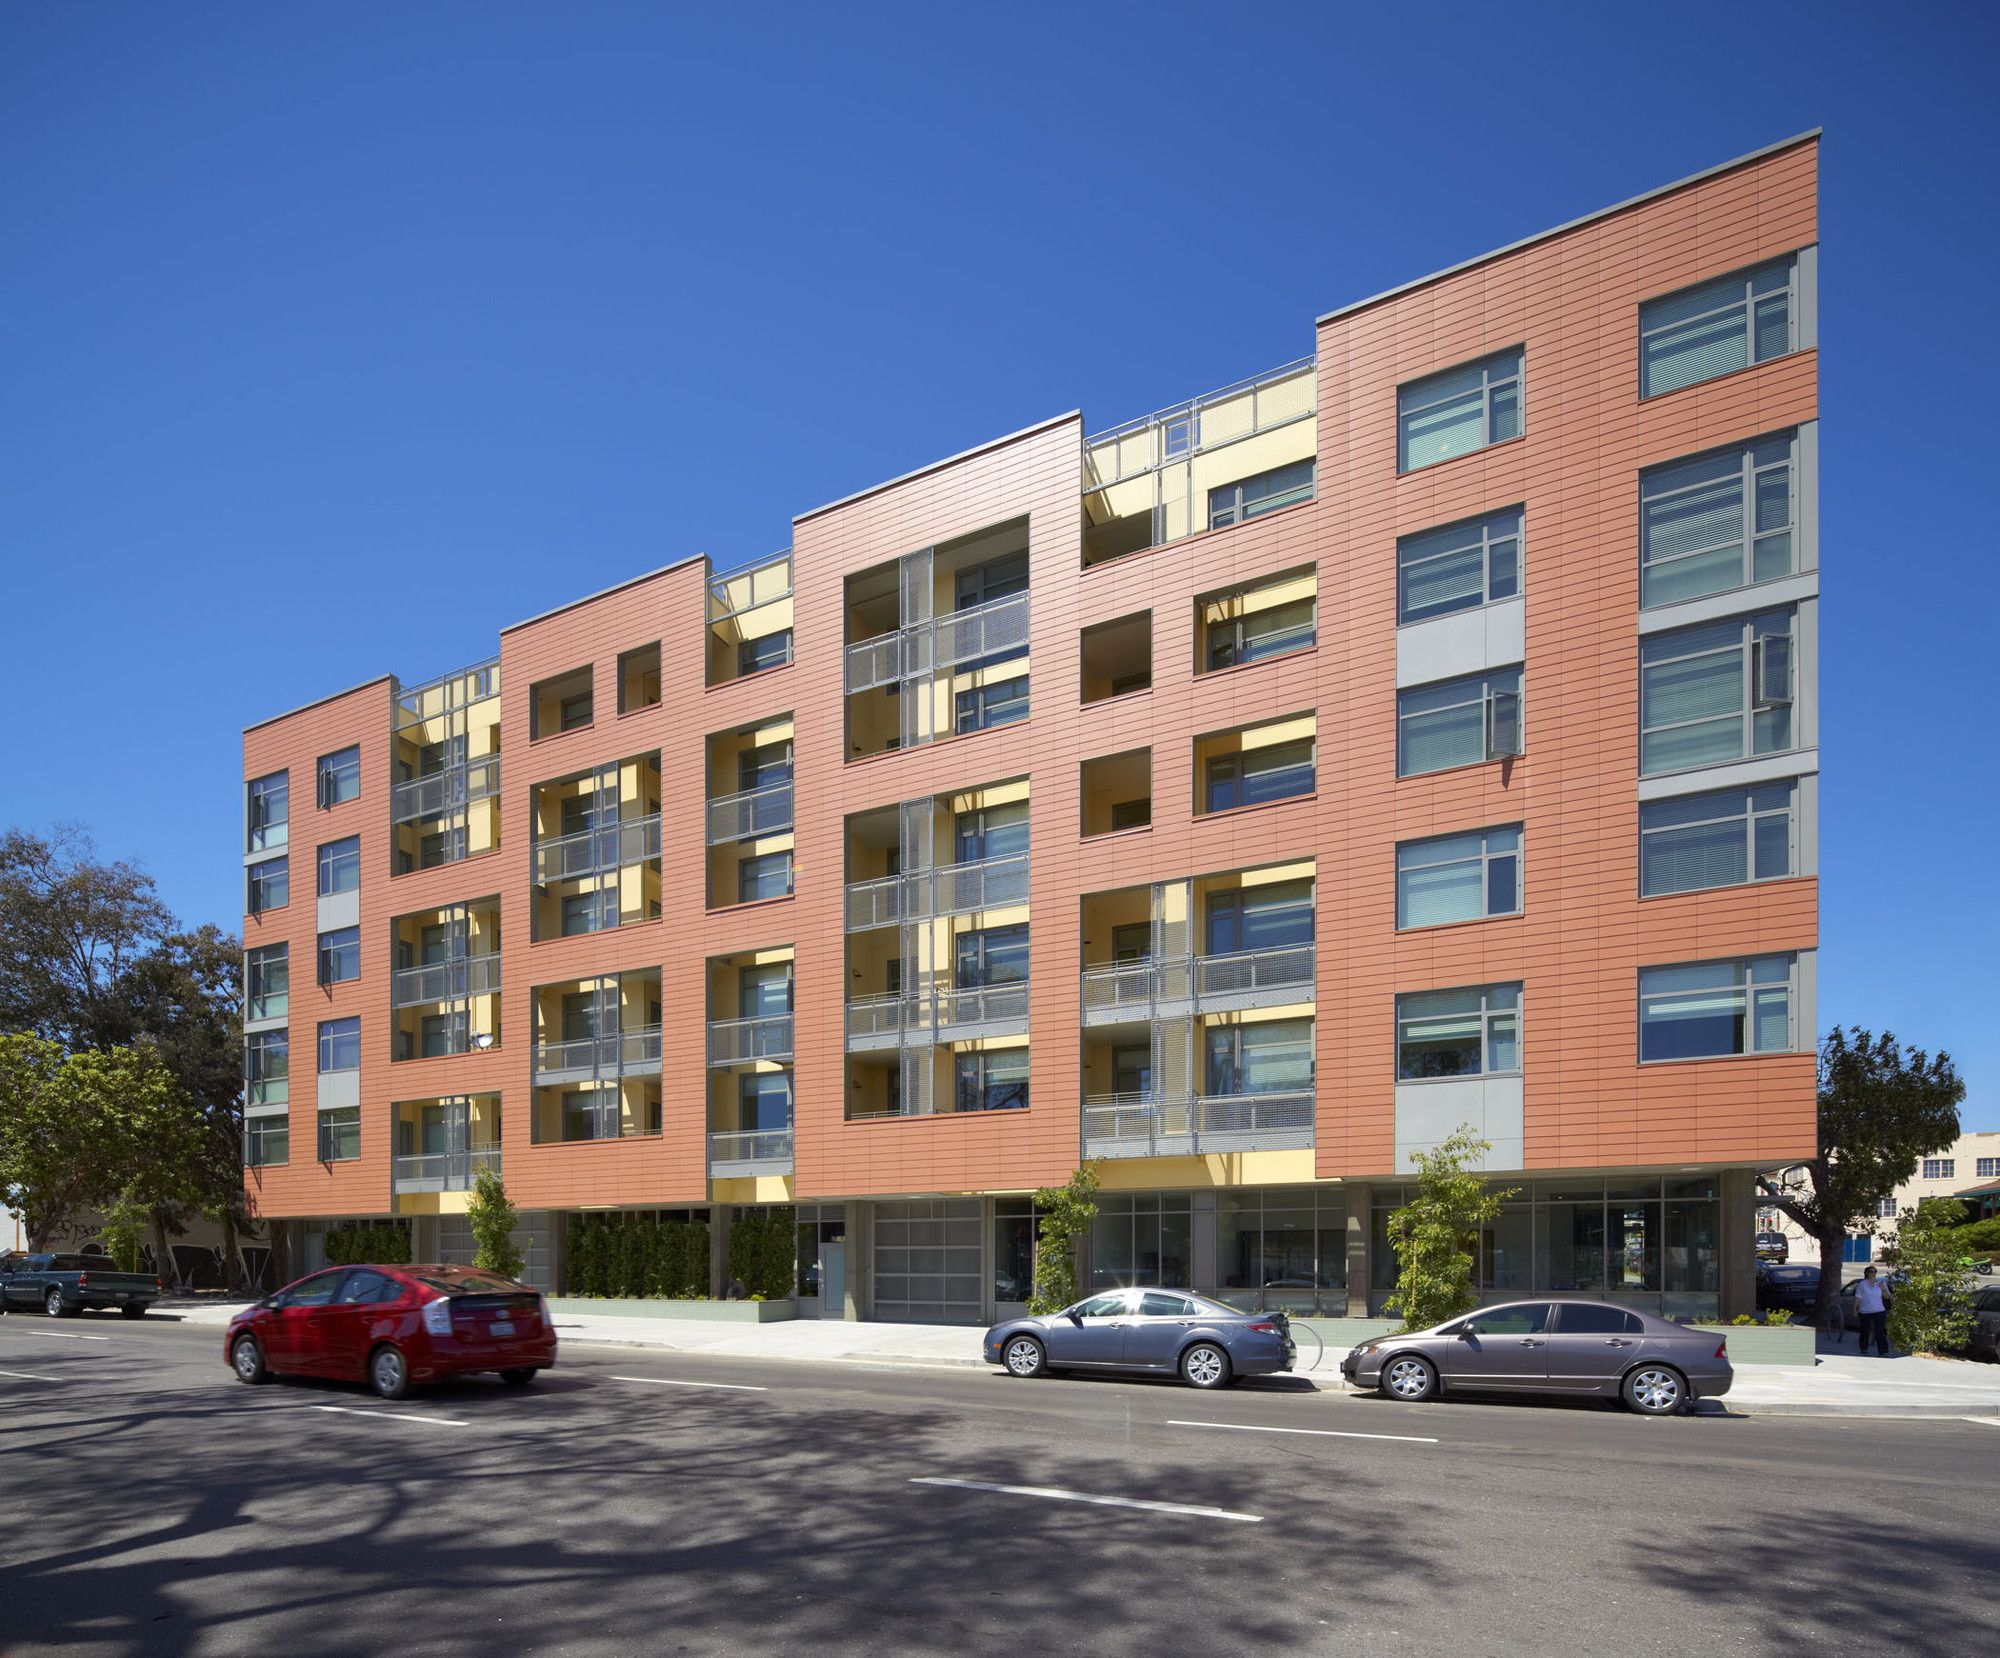 Gallery Of Aia Names 10 Most Impressive Houses Of 2014 5 Aia Senior Apartments Architect Magazine